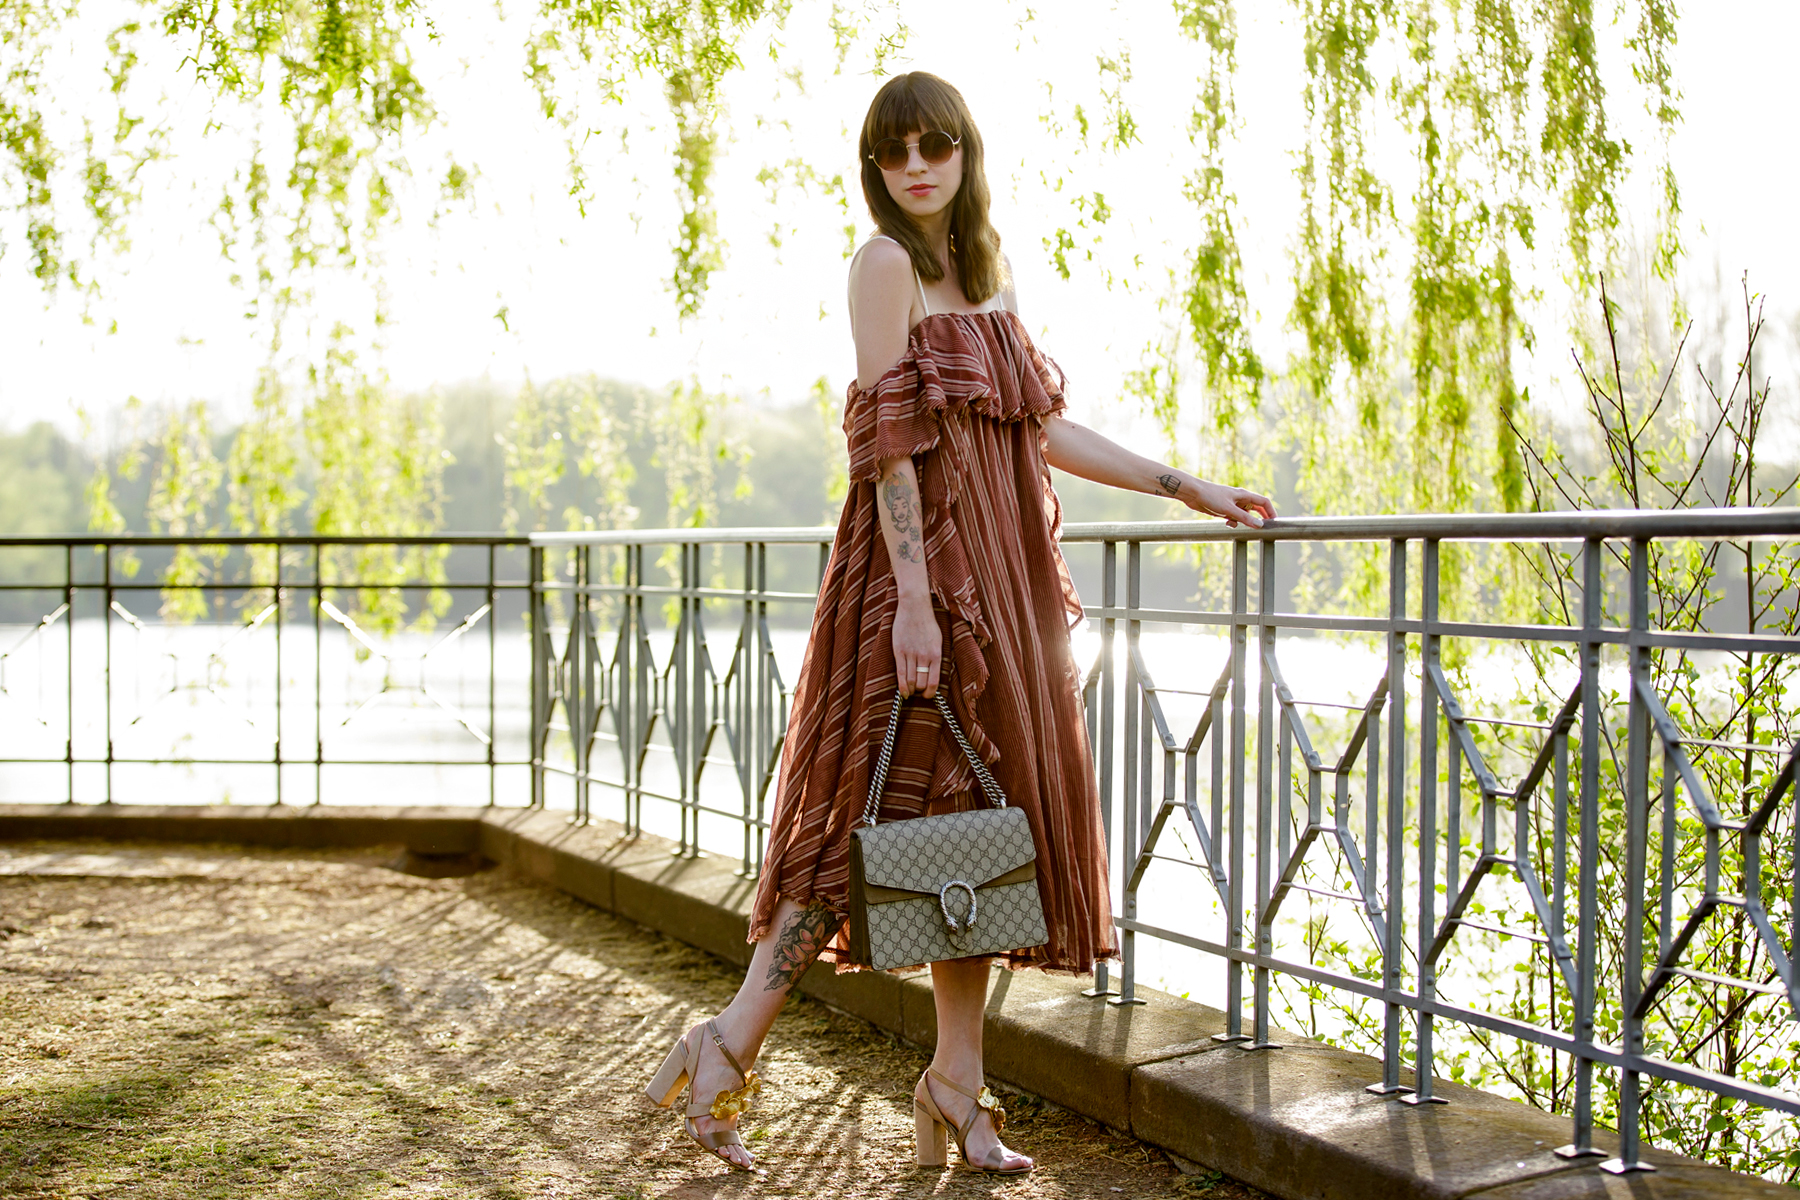 free people off shoulder hippie dress shopbop summer style zara gold flower heels round sunglasses boho vintage chic gucci dionysus fashionblogger cats & dogs modeblog ricarda schernus blogger düsseldorf 4